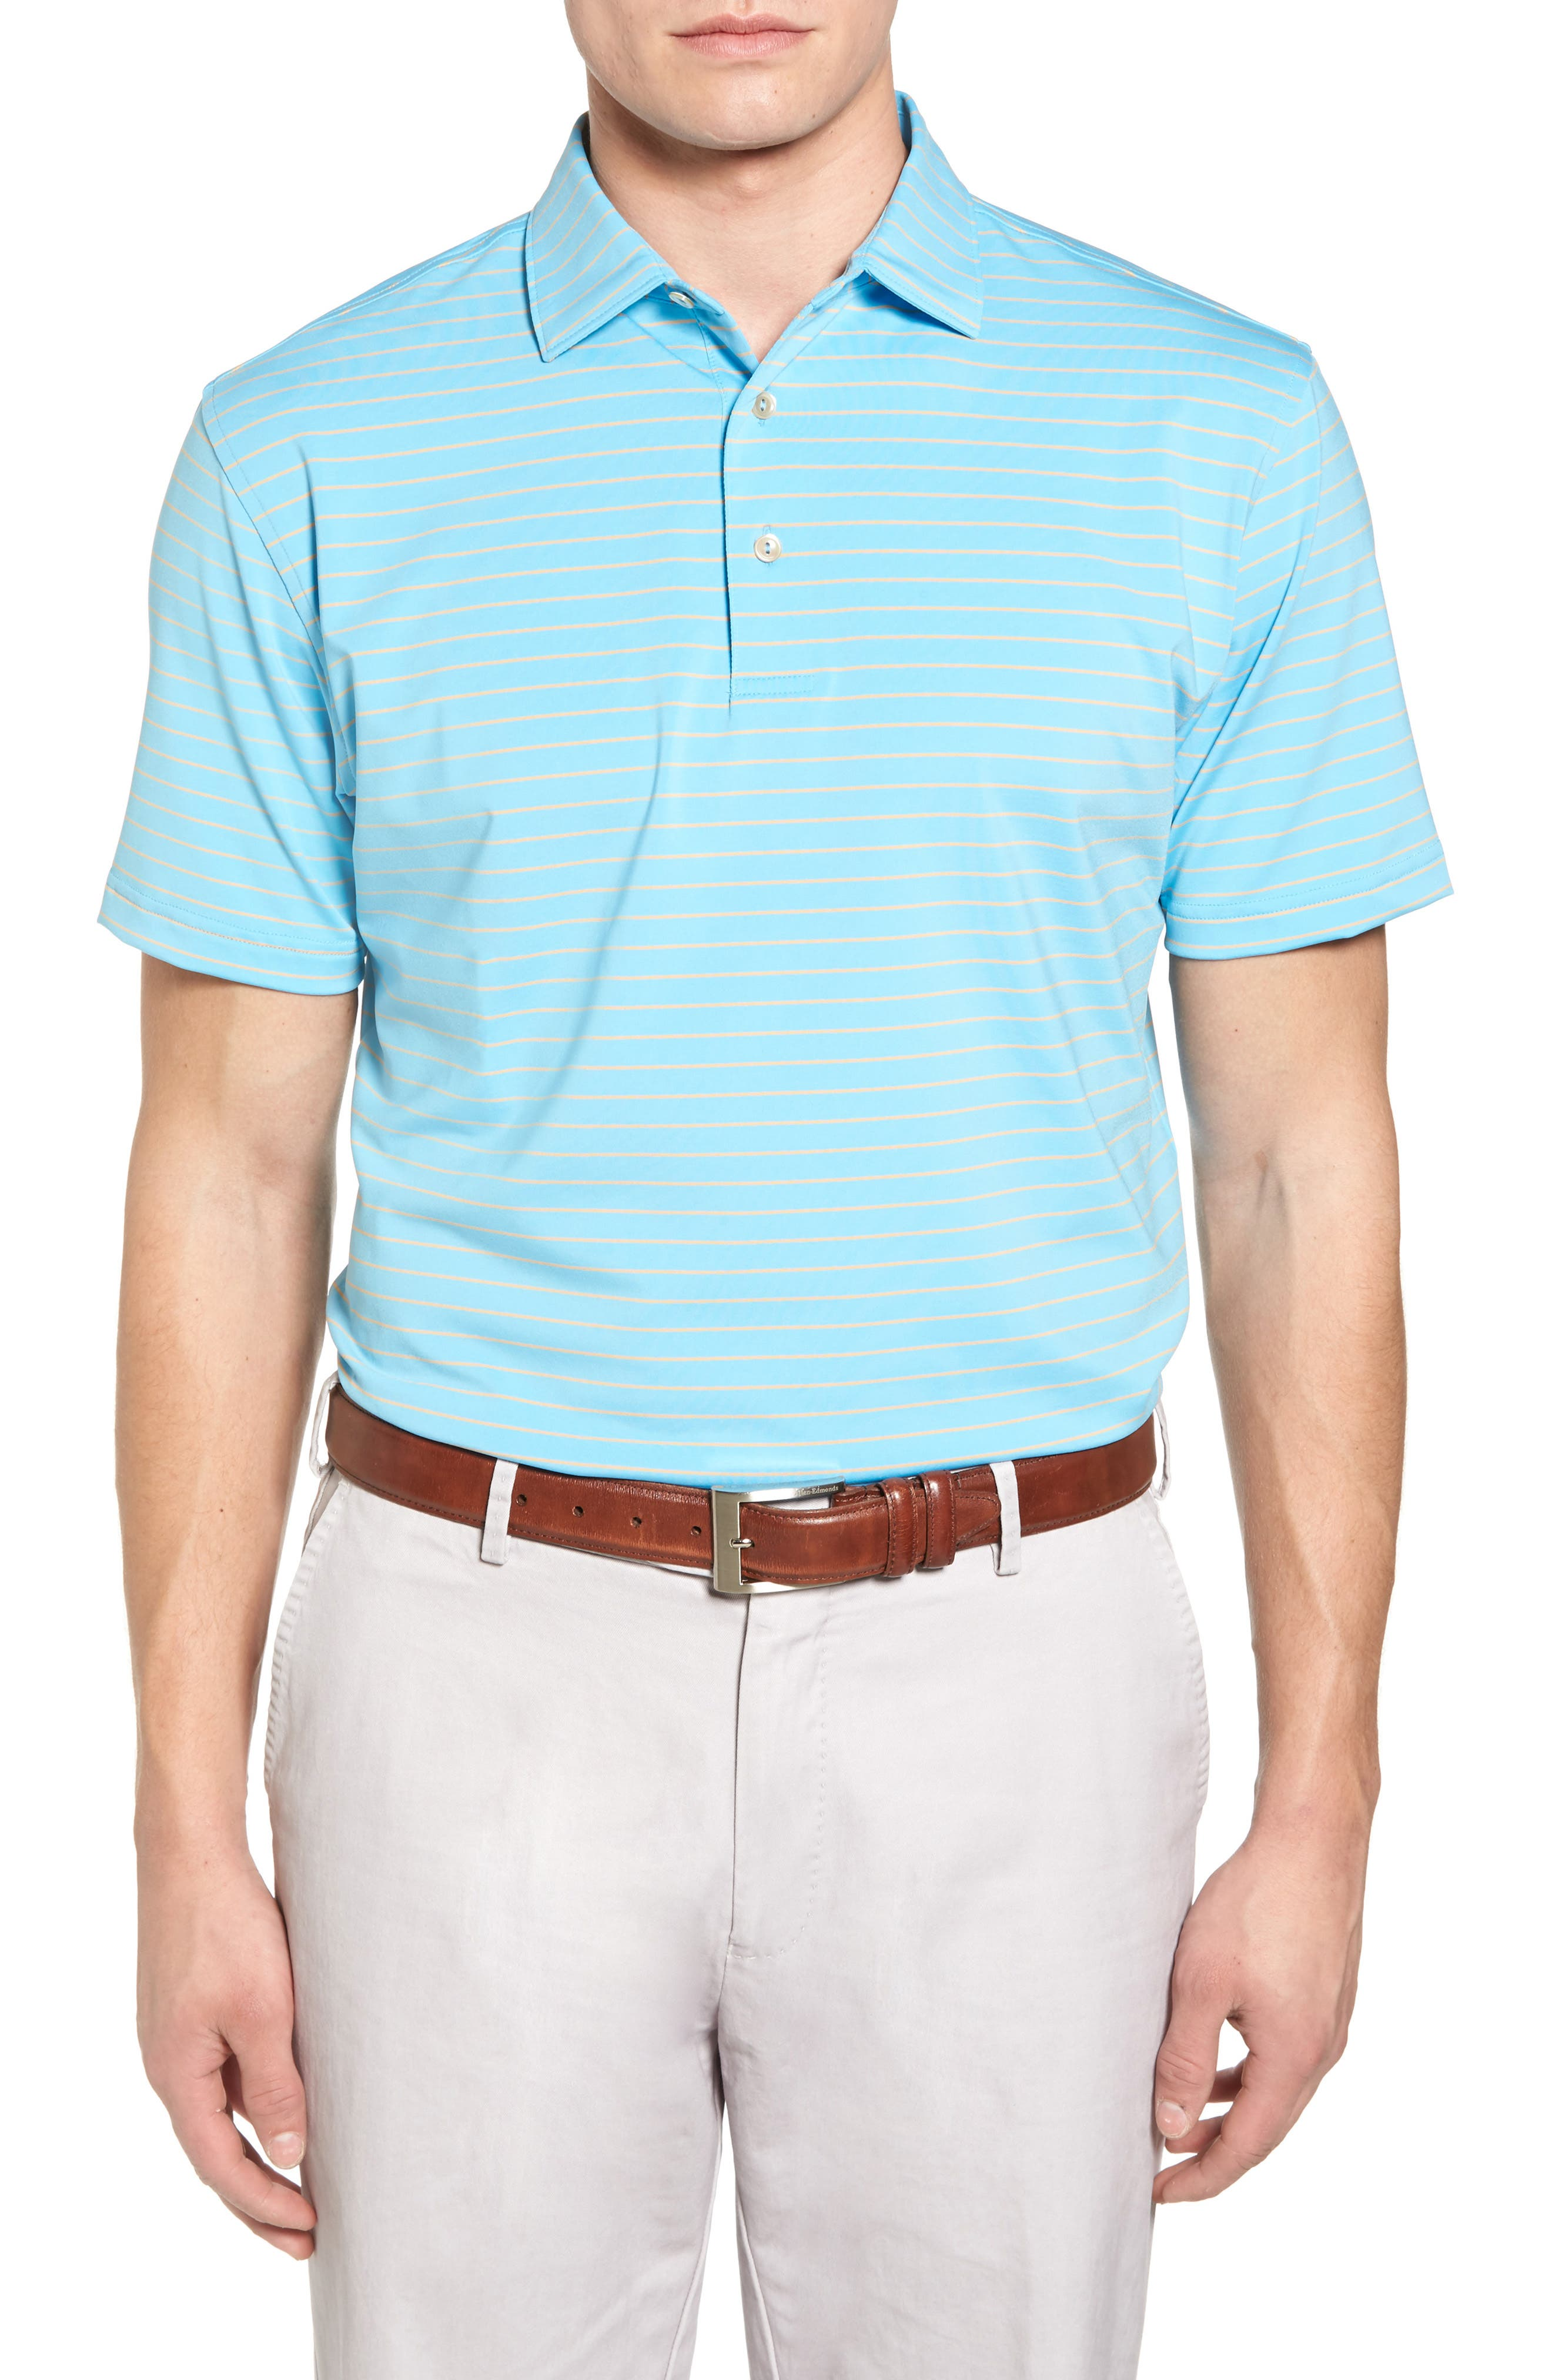 Halifax Pinstripe Stretch Jersey Polo,                             Main thumbnail 1, color,                             477